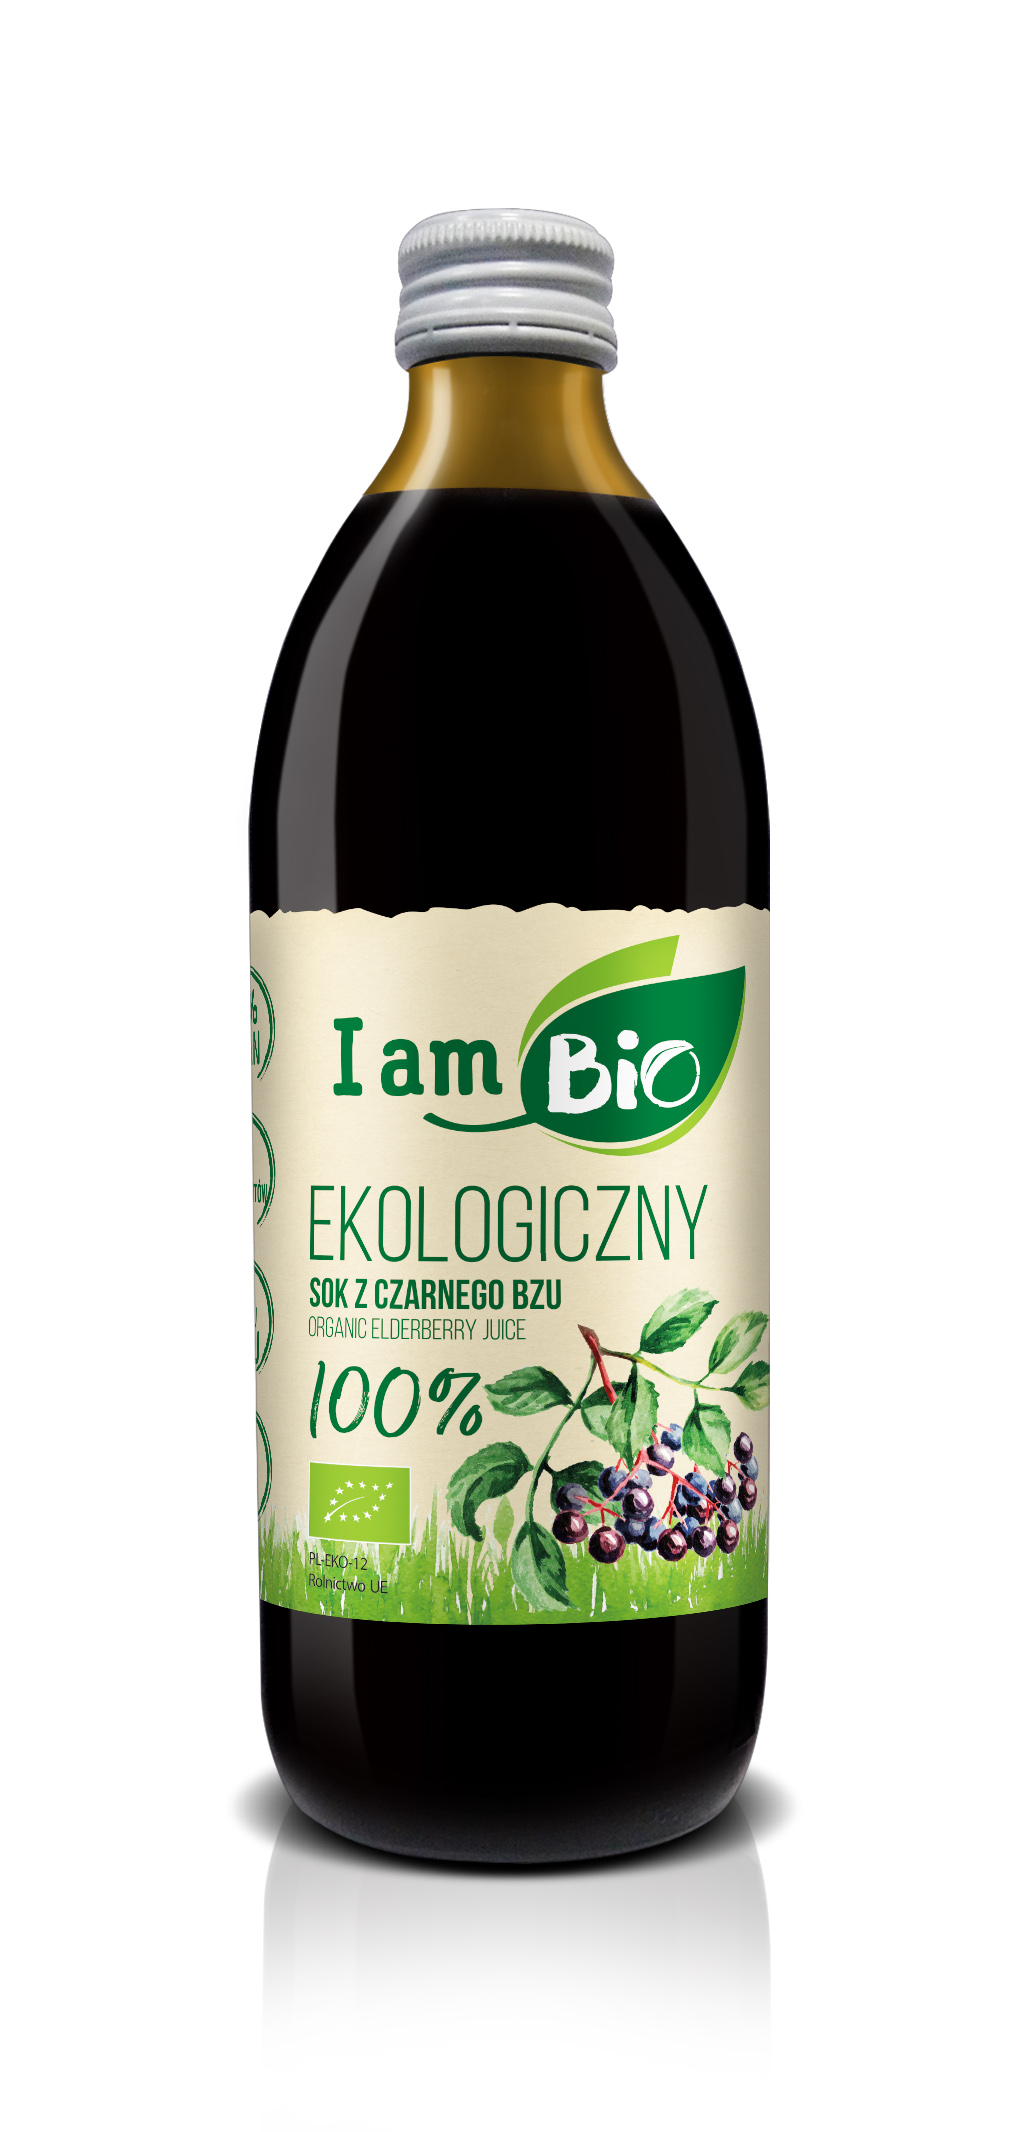 I AM BIO elderberry juice